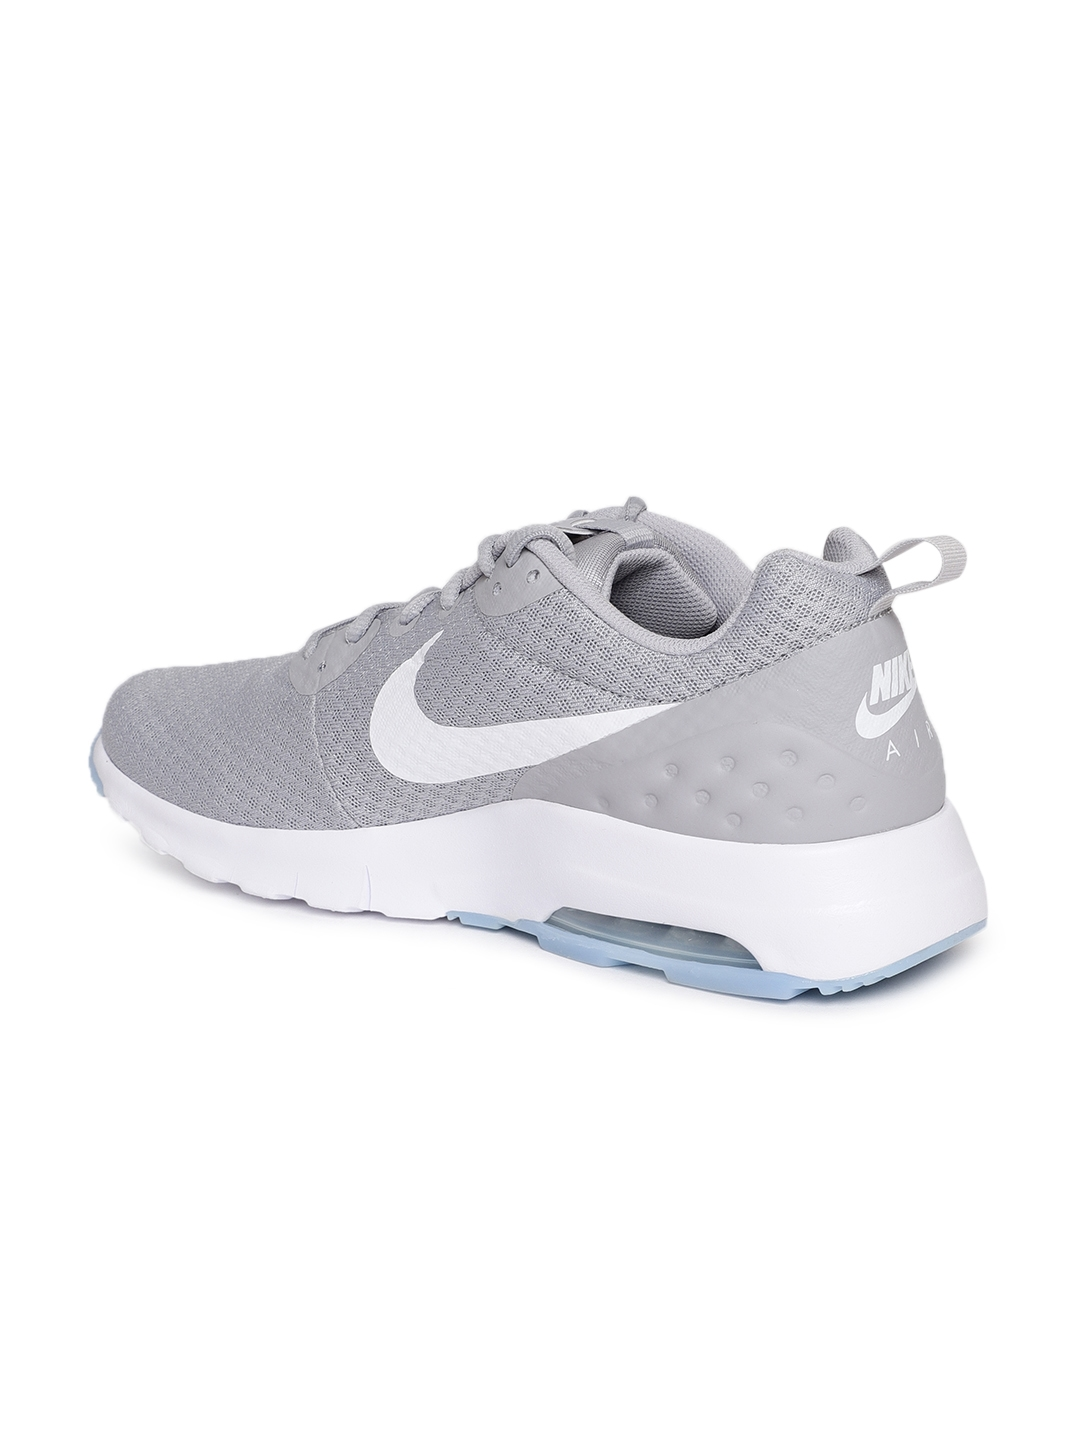 a1958d60d64 Cheap Shoes Men Nike Air Max Nike Mens Air Max Motion Lw Running